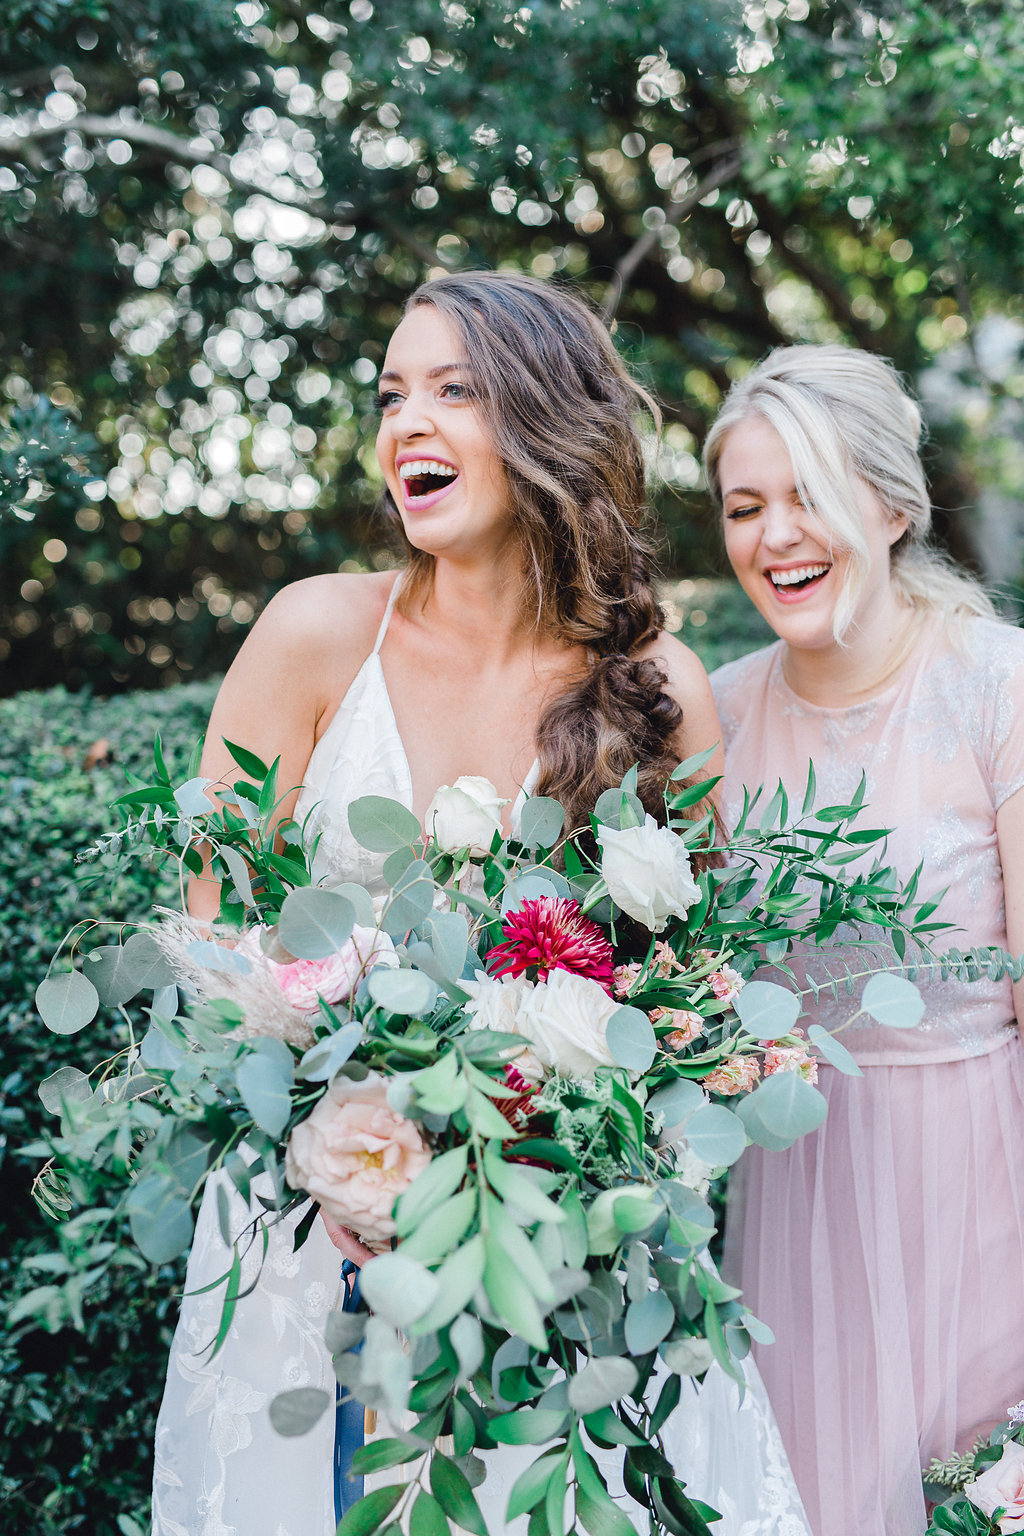 ships-of-the-sea-ivory-and-beau-savannah-wedding-planner-savannah-event-designer-blush-by-hayley-paige-wedding-dress-hayley-paige-occasions-savannah-bridal-boutique-savannah-wedding-planners-savannah-event-designer-savannah-florist.JPG